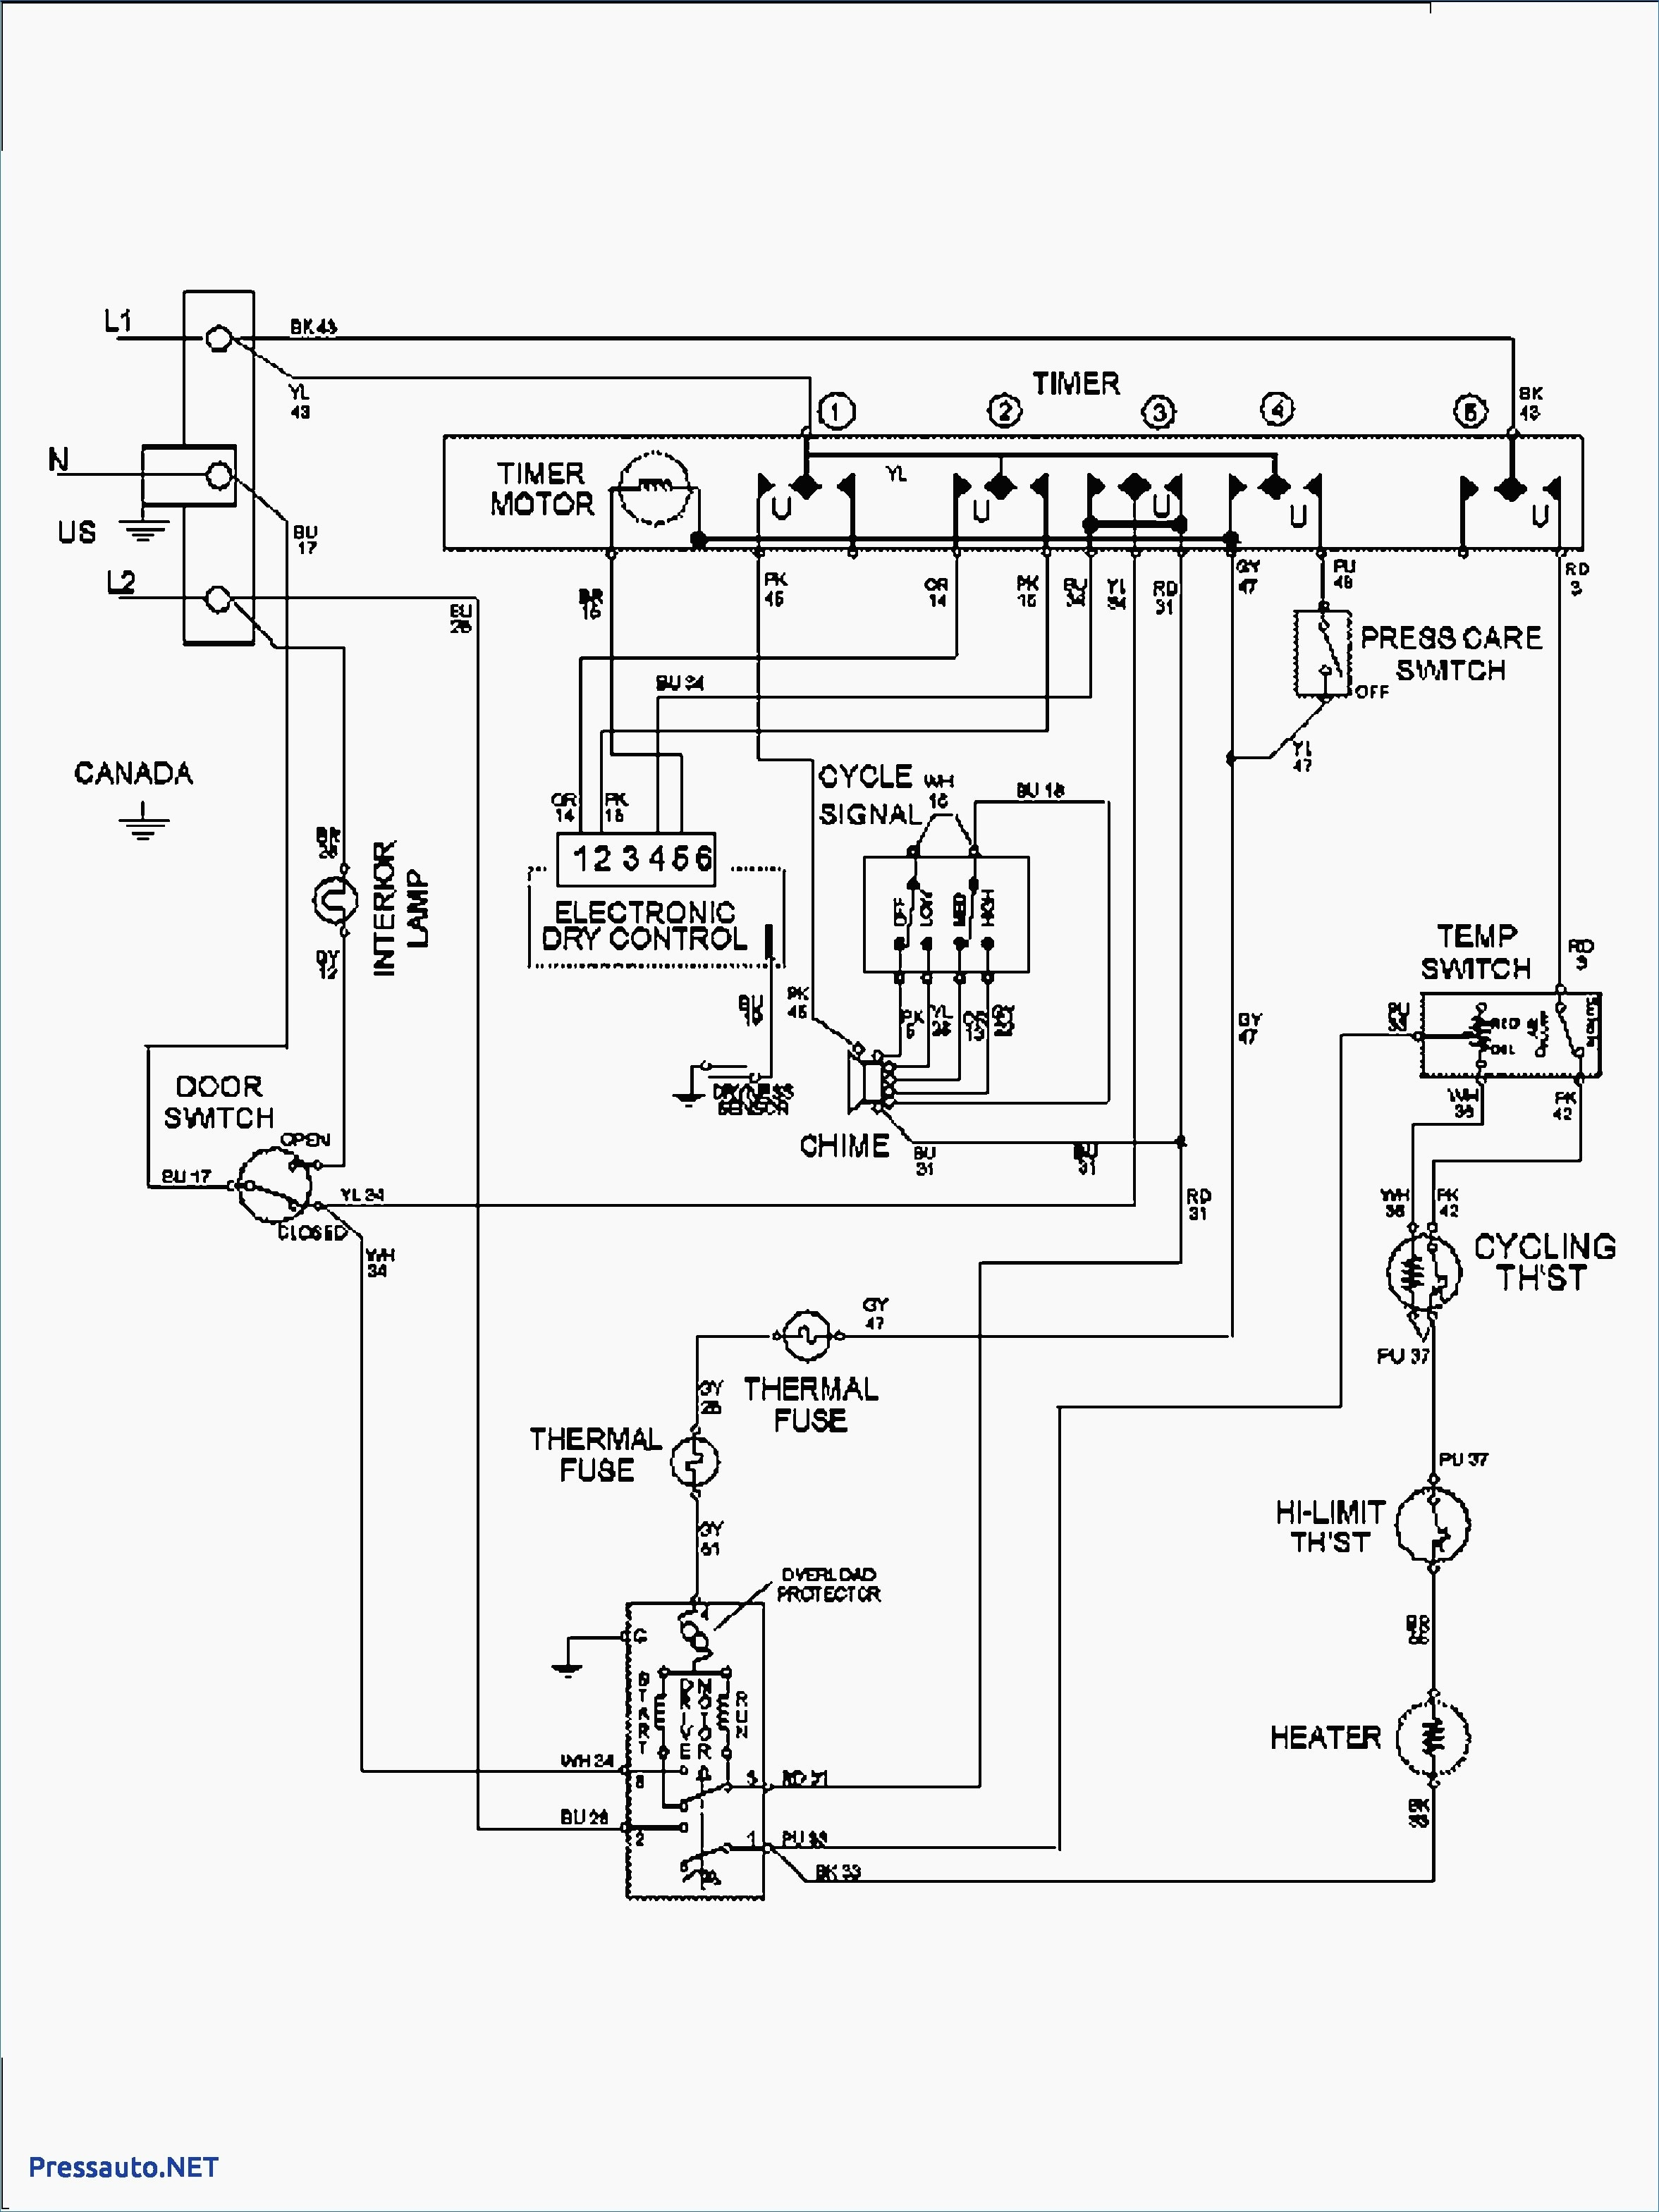 Dryer Schematic